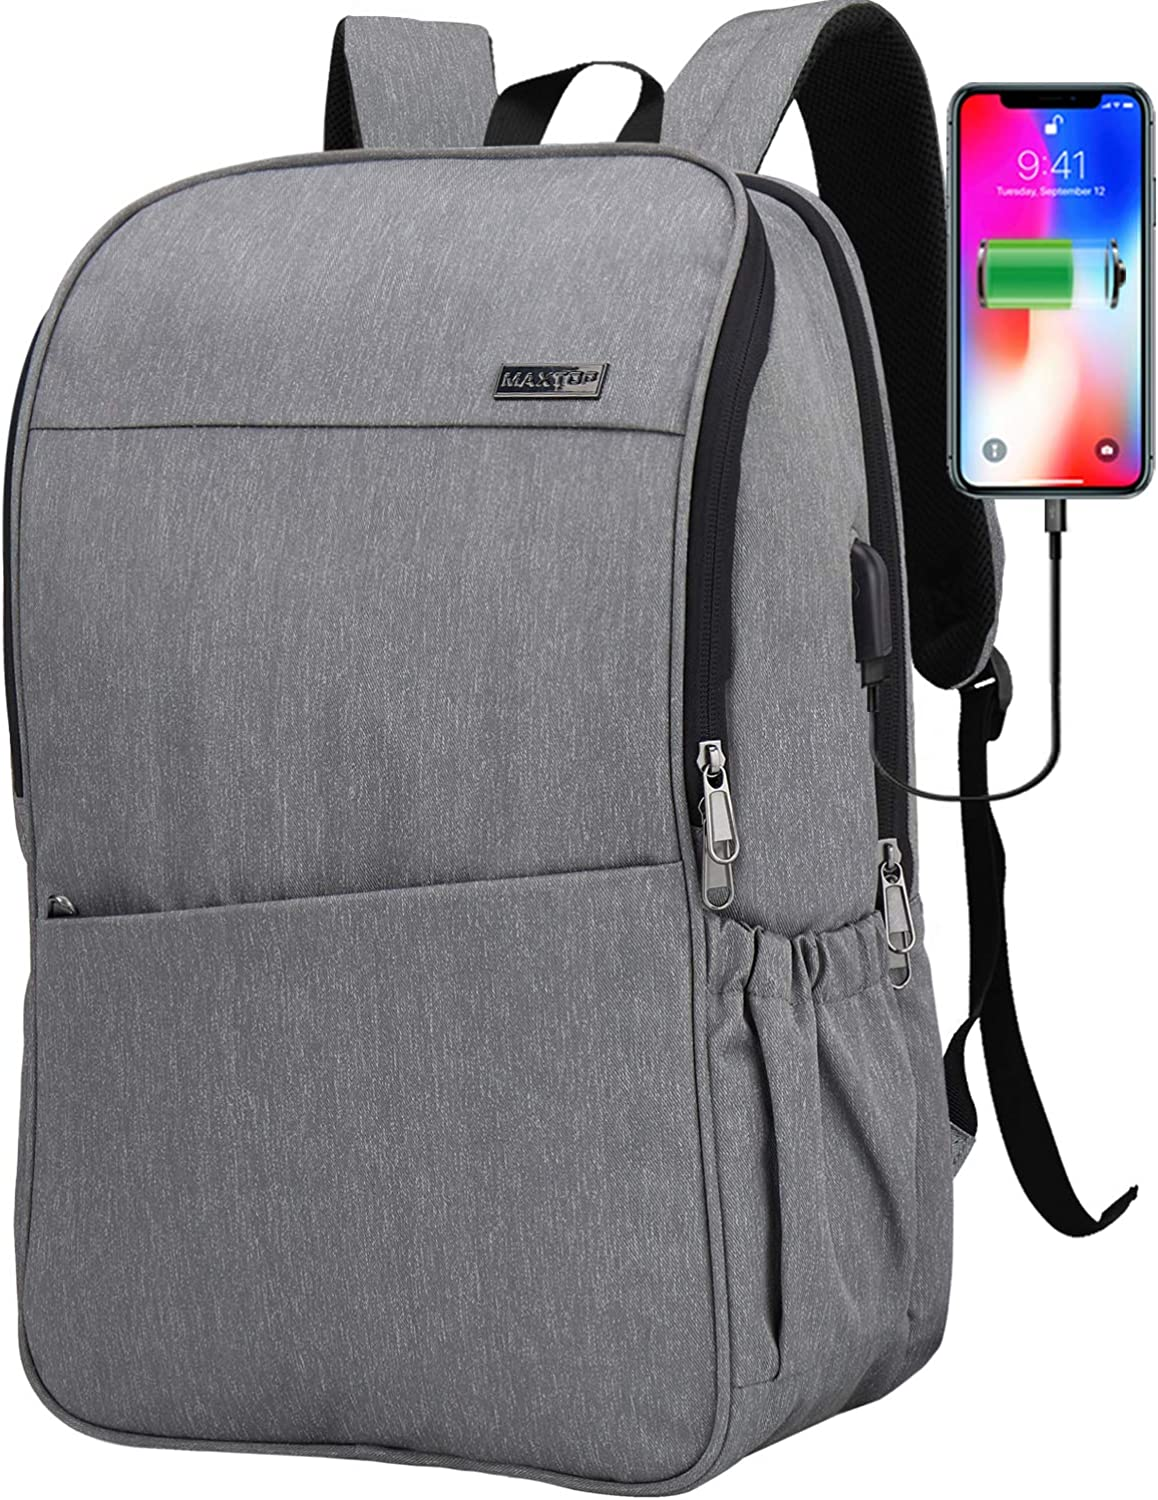 Deep Storage Laptop Backpack with USB Charging Port[Water Resistant] College School Computer Bookbag Fits 16 Inch Laptop